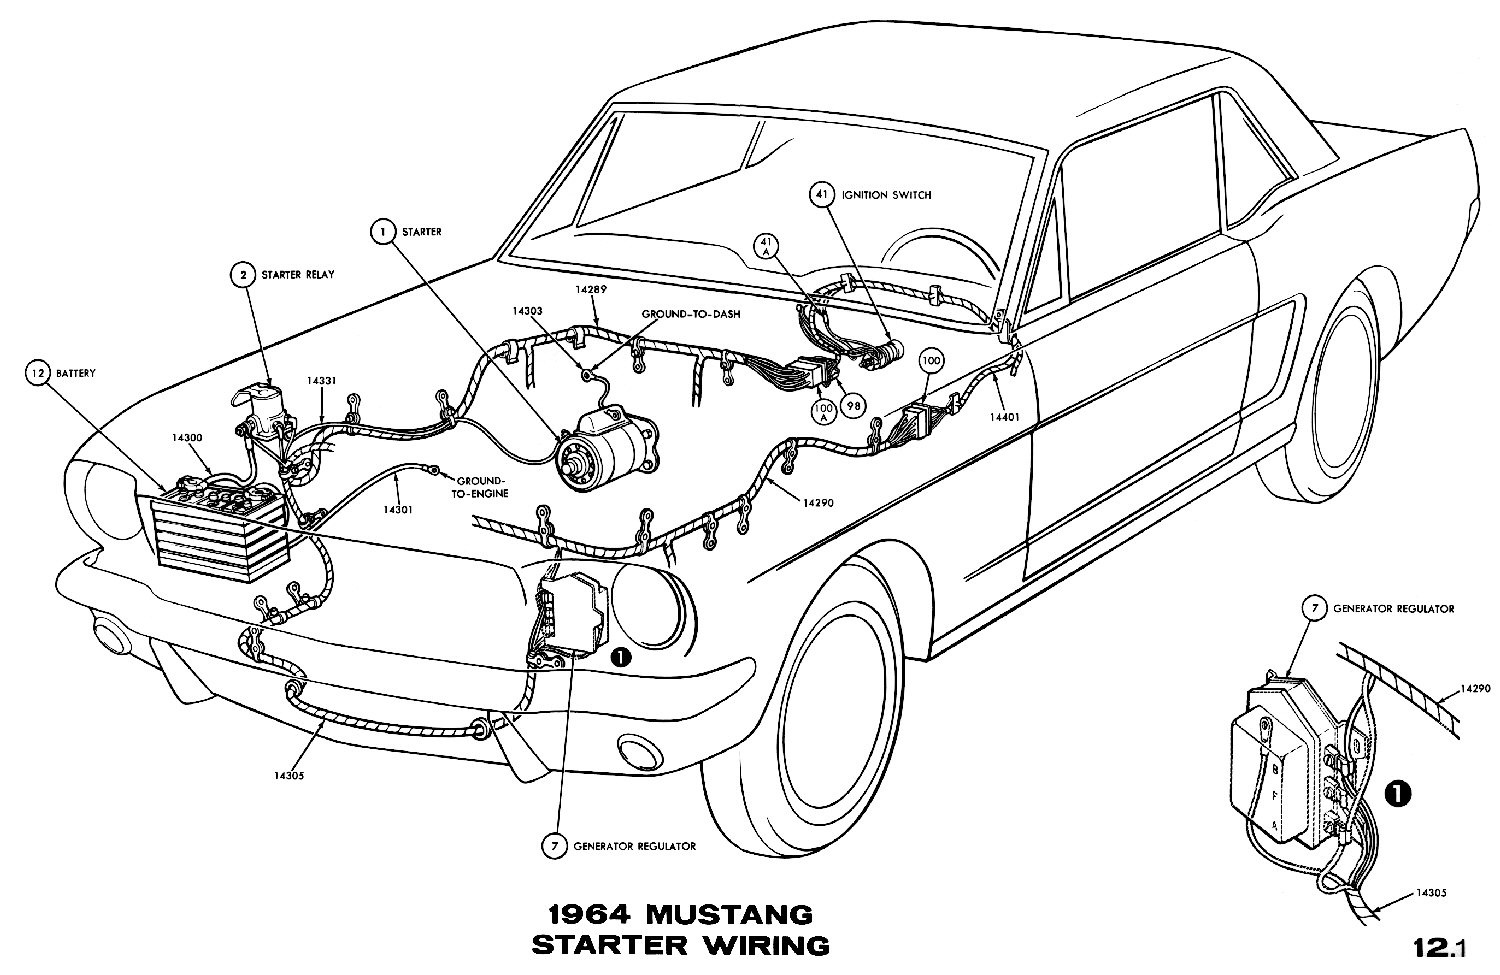 1964d 1964 mustang wiring diagrams average joe restoration 1966 mustang starter wiring diagram at alyssarenee.co